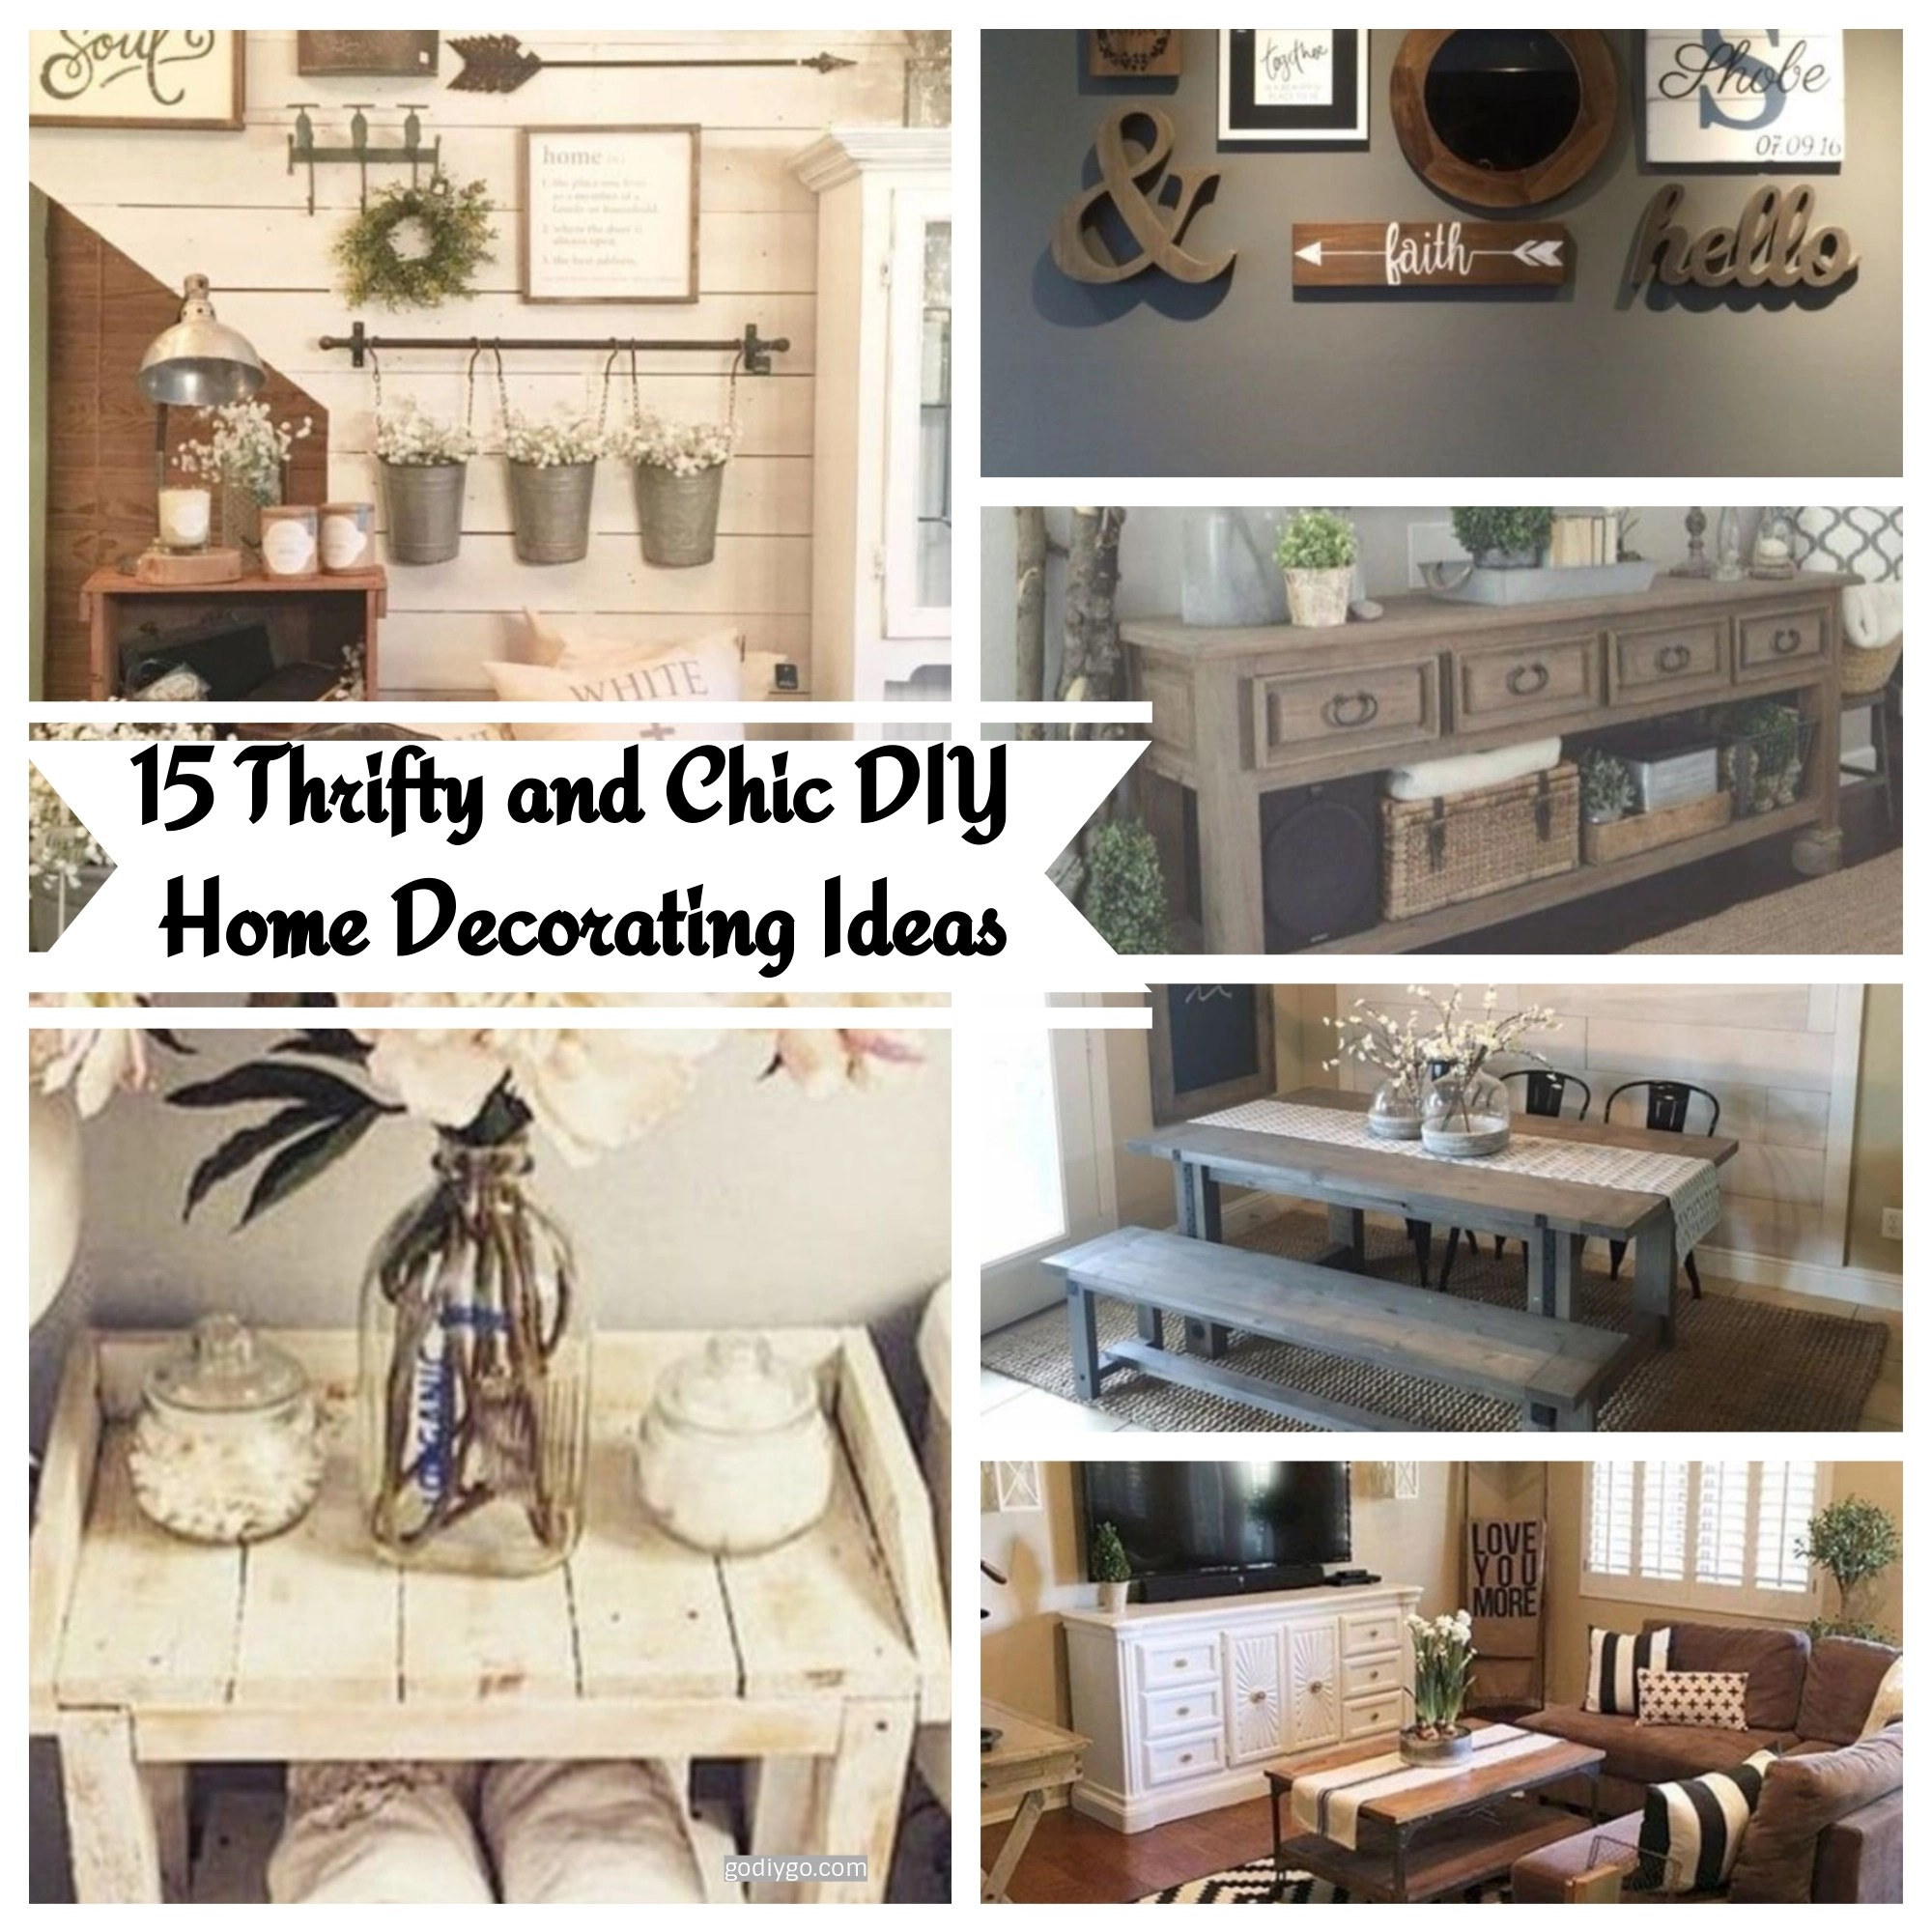 Frugal Home Decor: 15 Thrifty And Chic DIY Home Decorating Ideas